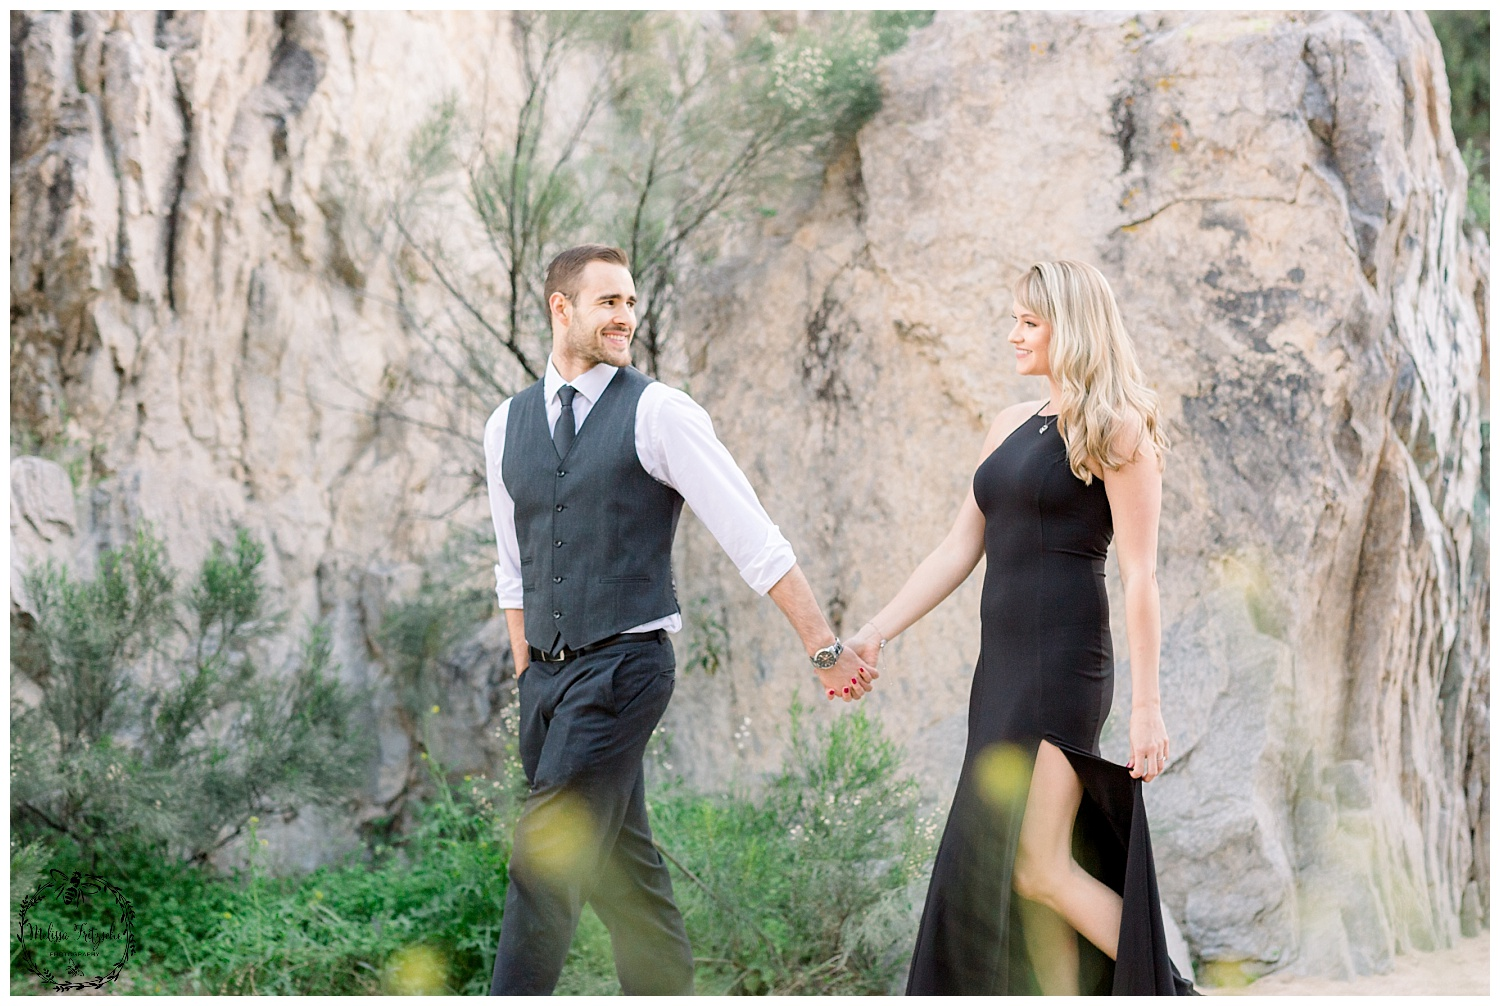 Tucson Desert Engagement Session- Kelly and Ben_0015.jpg